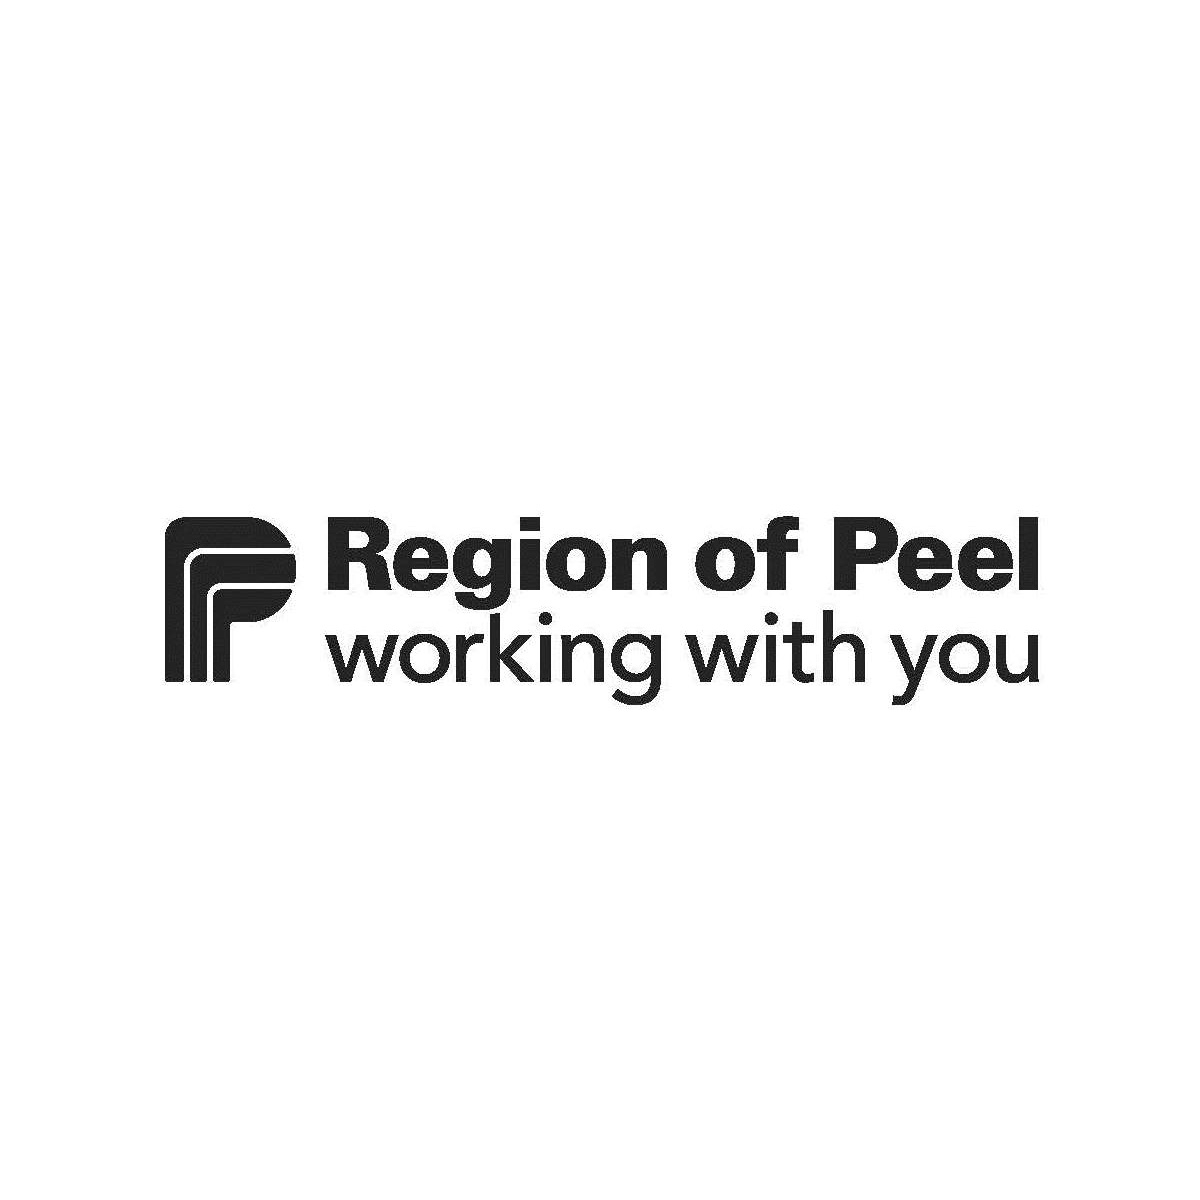 Peel Region logo